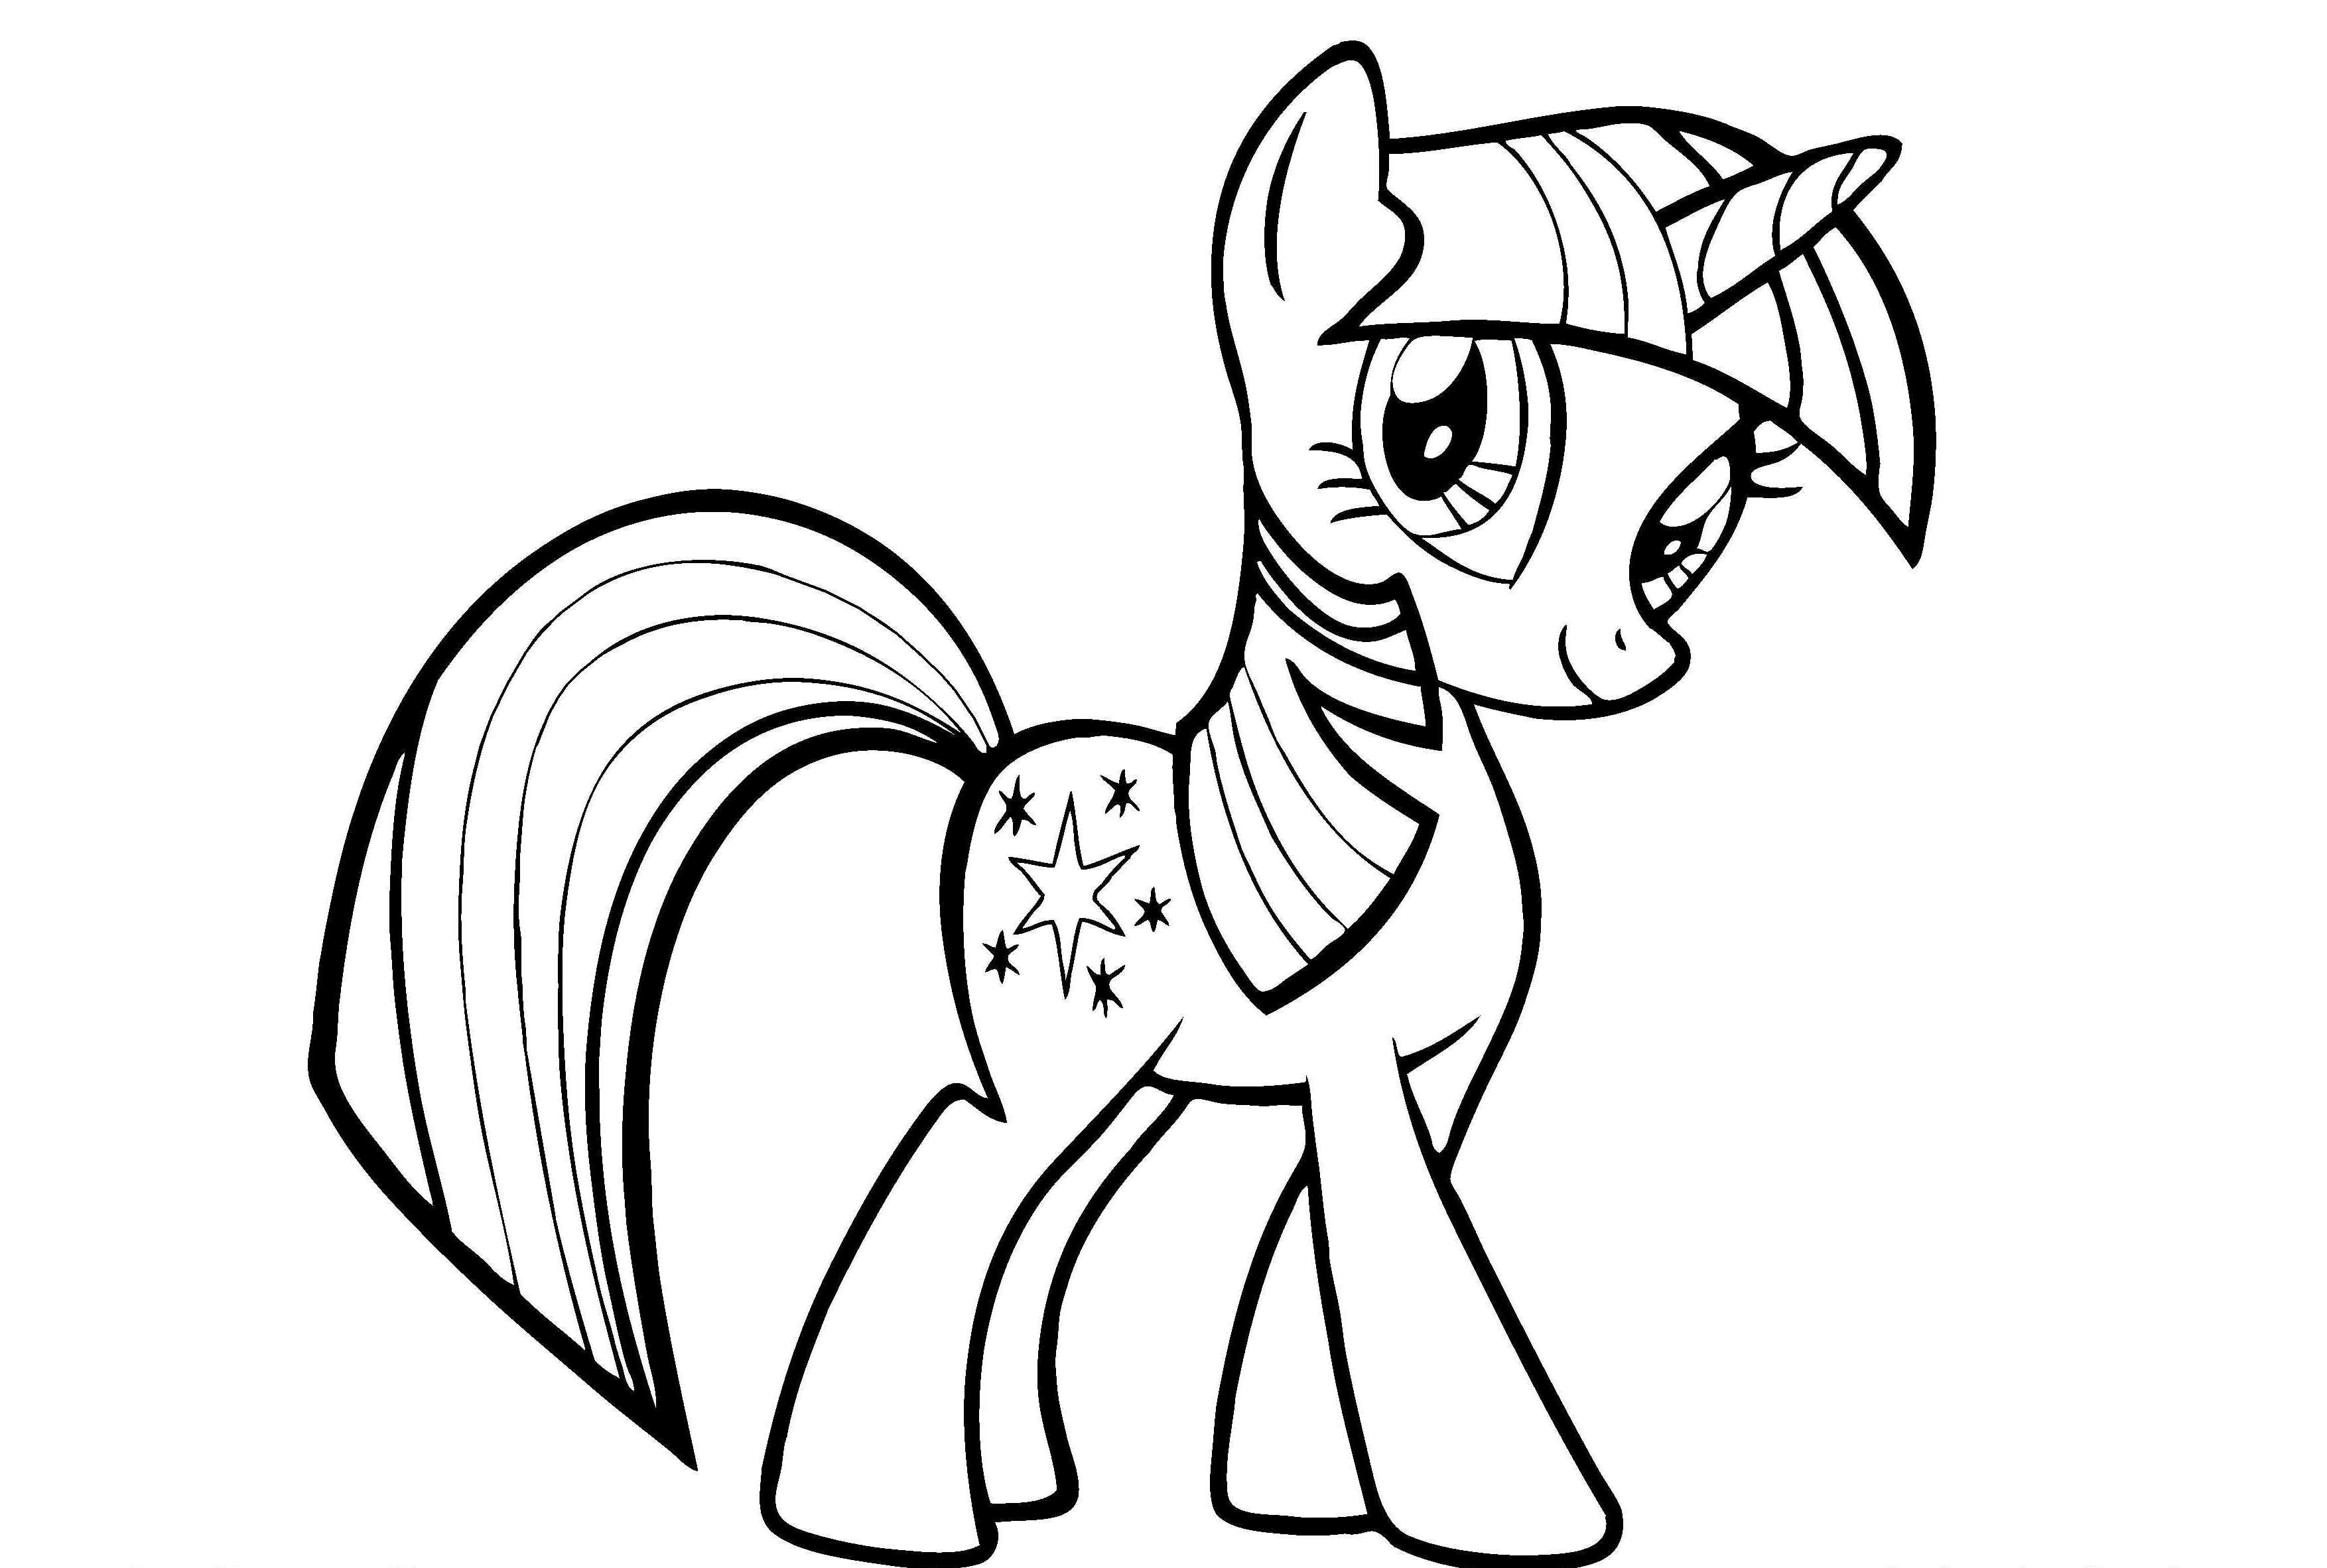 My Little Pony Coloring Pages Twilight Sparkle Coloring Pages Jpg 3508 2364 Horse Coloring Pages My Little Pony Coloring My Little Pony Printable